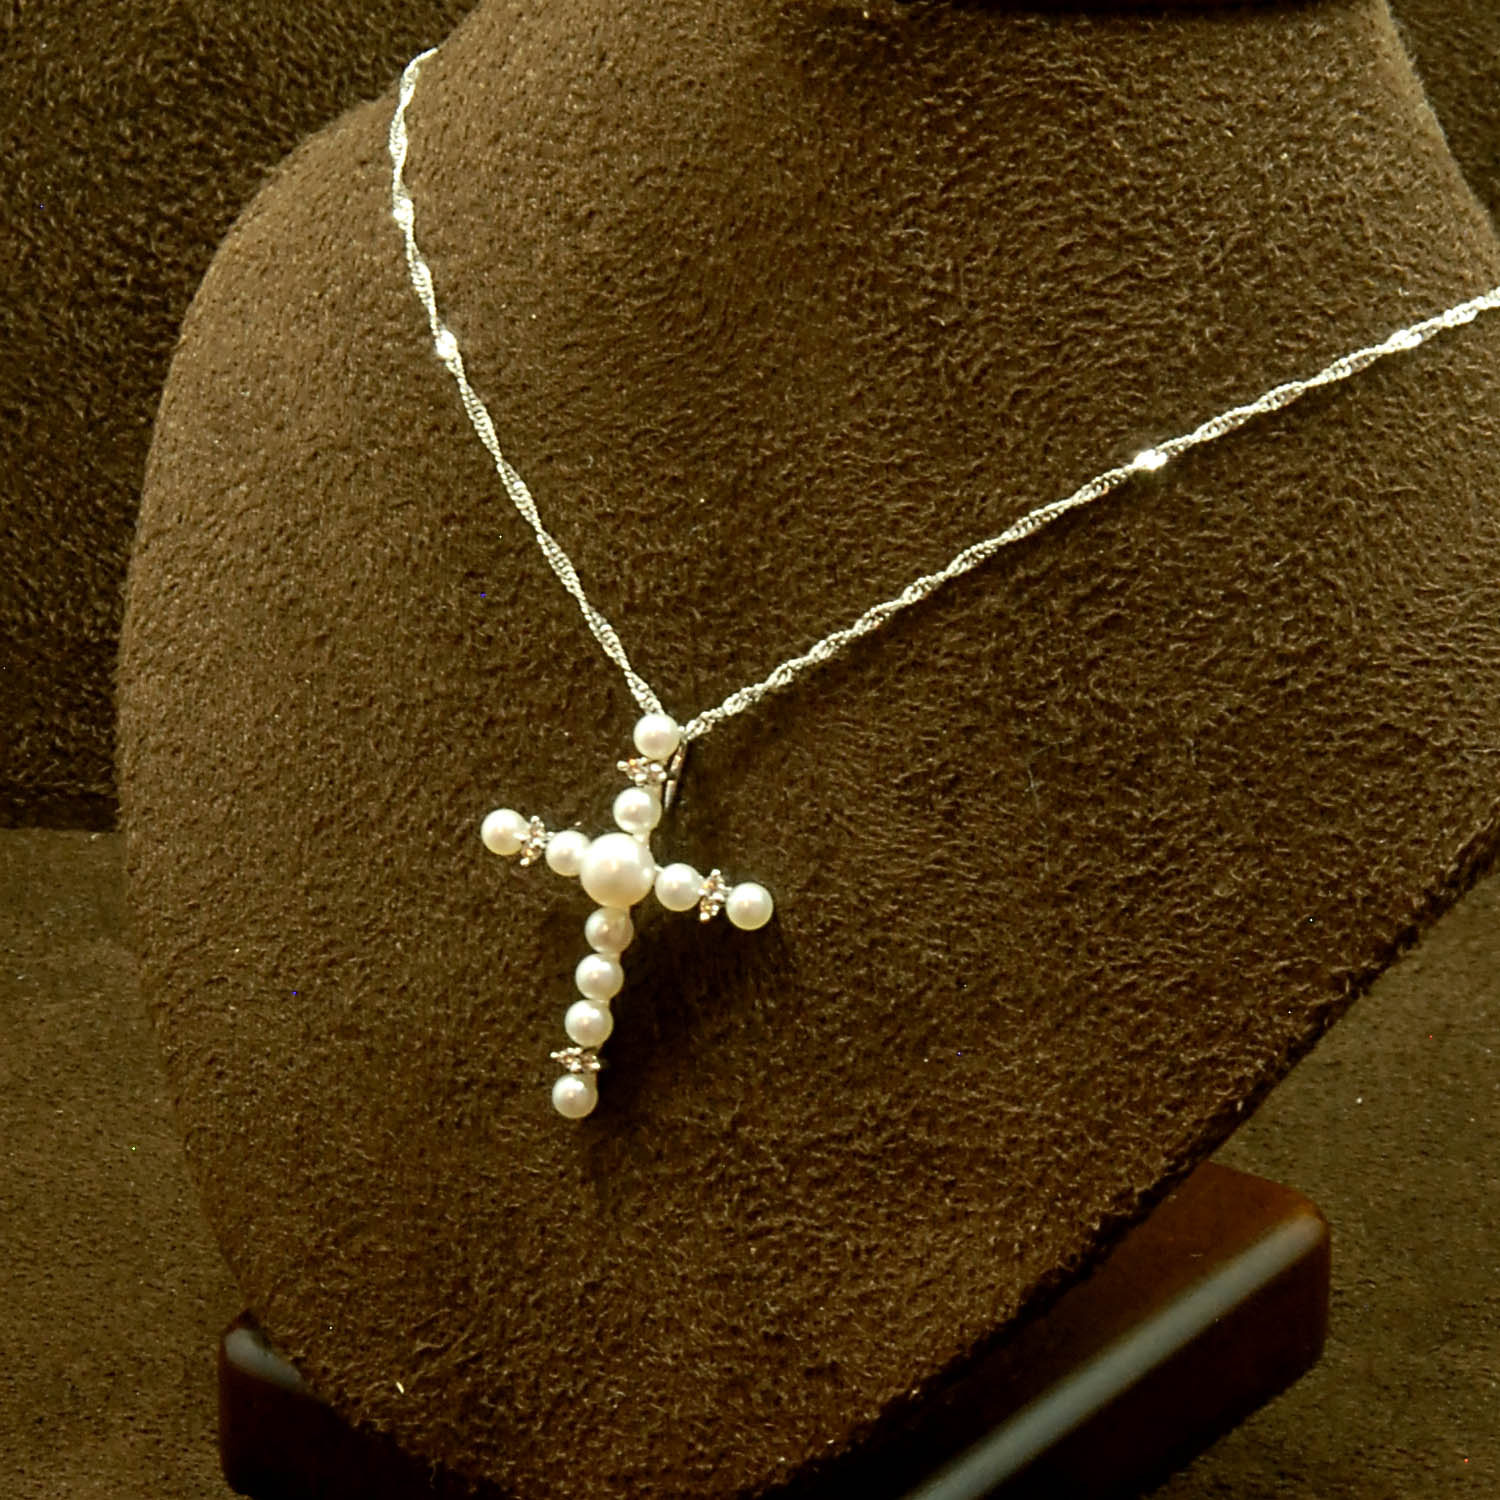 Pearl necklace with cross pendant necklaces pendants 14k wg pearl dia cross pendant wake forest jewelers your neighborhood jewelry aloadofball Gallery